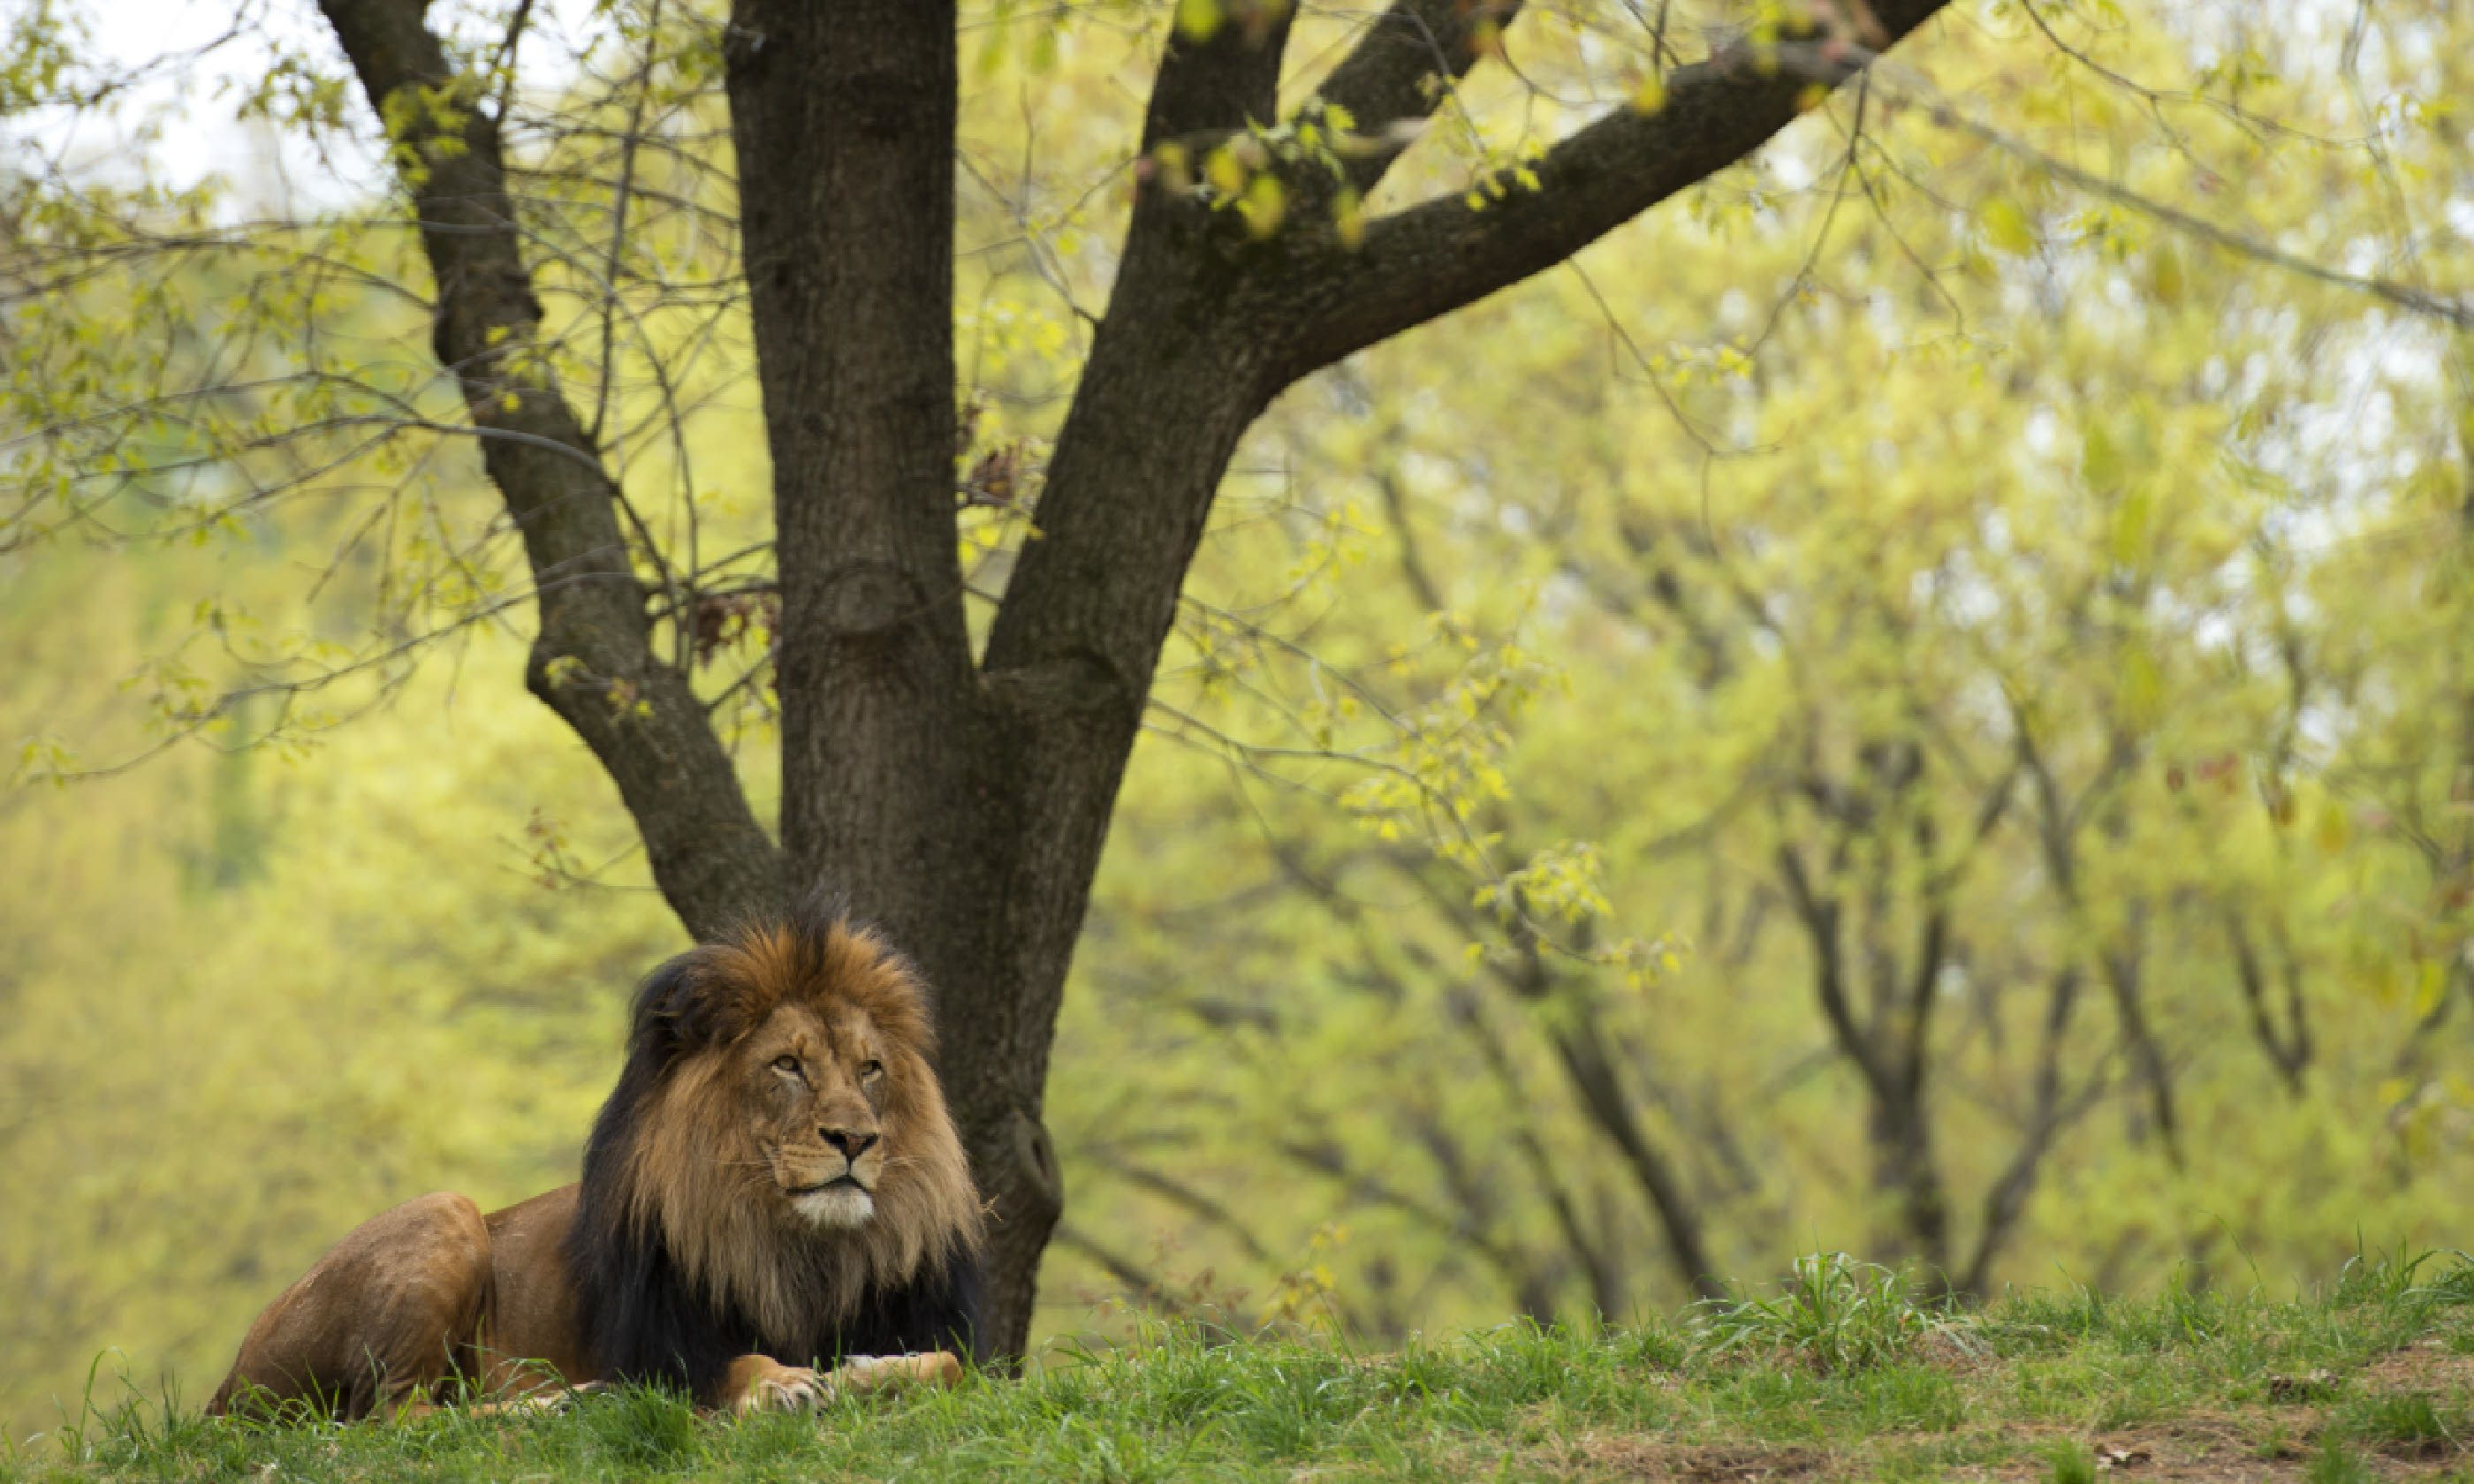 Male lion, Gir Forest (Shutterstock)